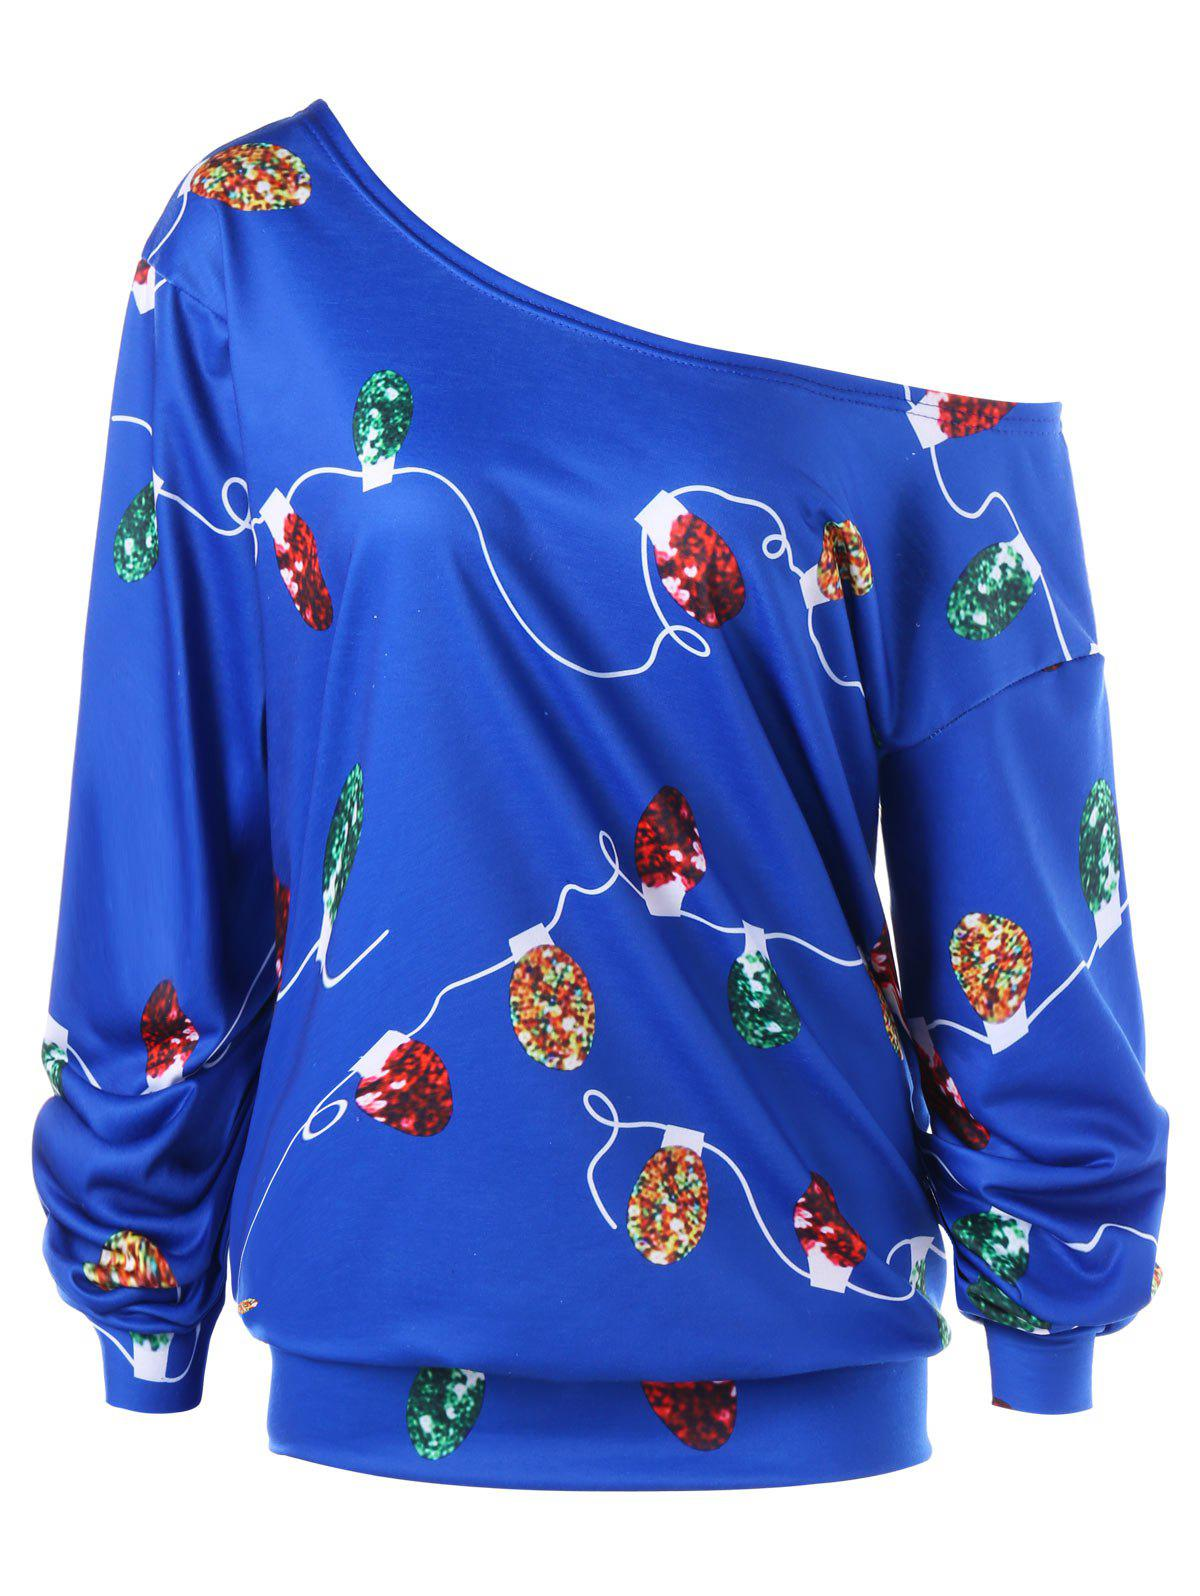 Plus Size Christmas String Light Skew Collar Sweatshirt plus size christmas reindeer skew collar sweatshirt